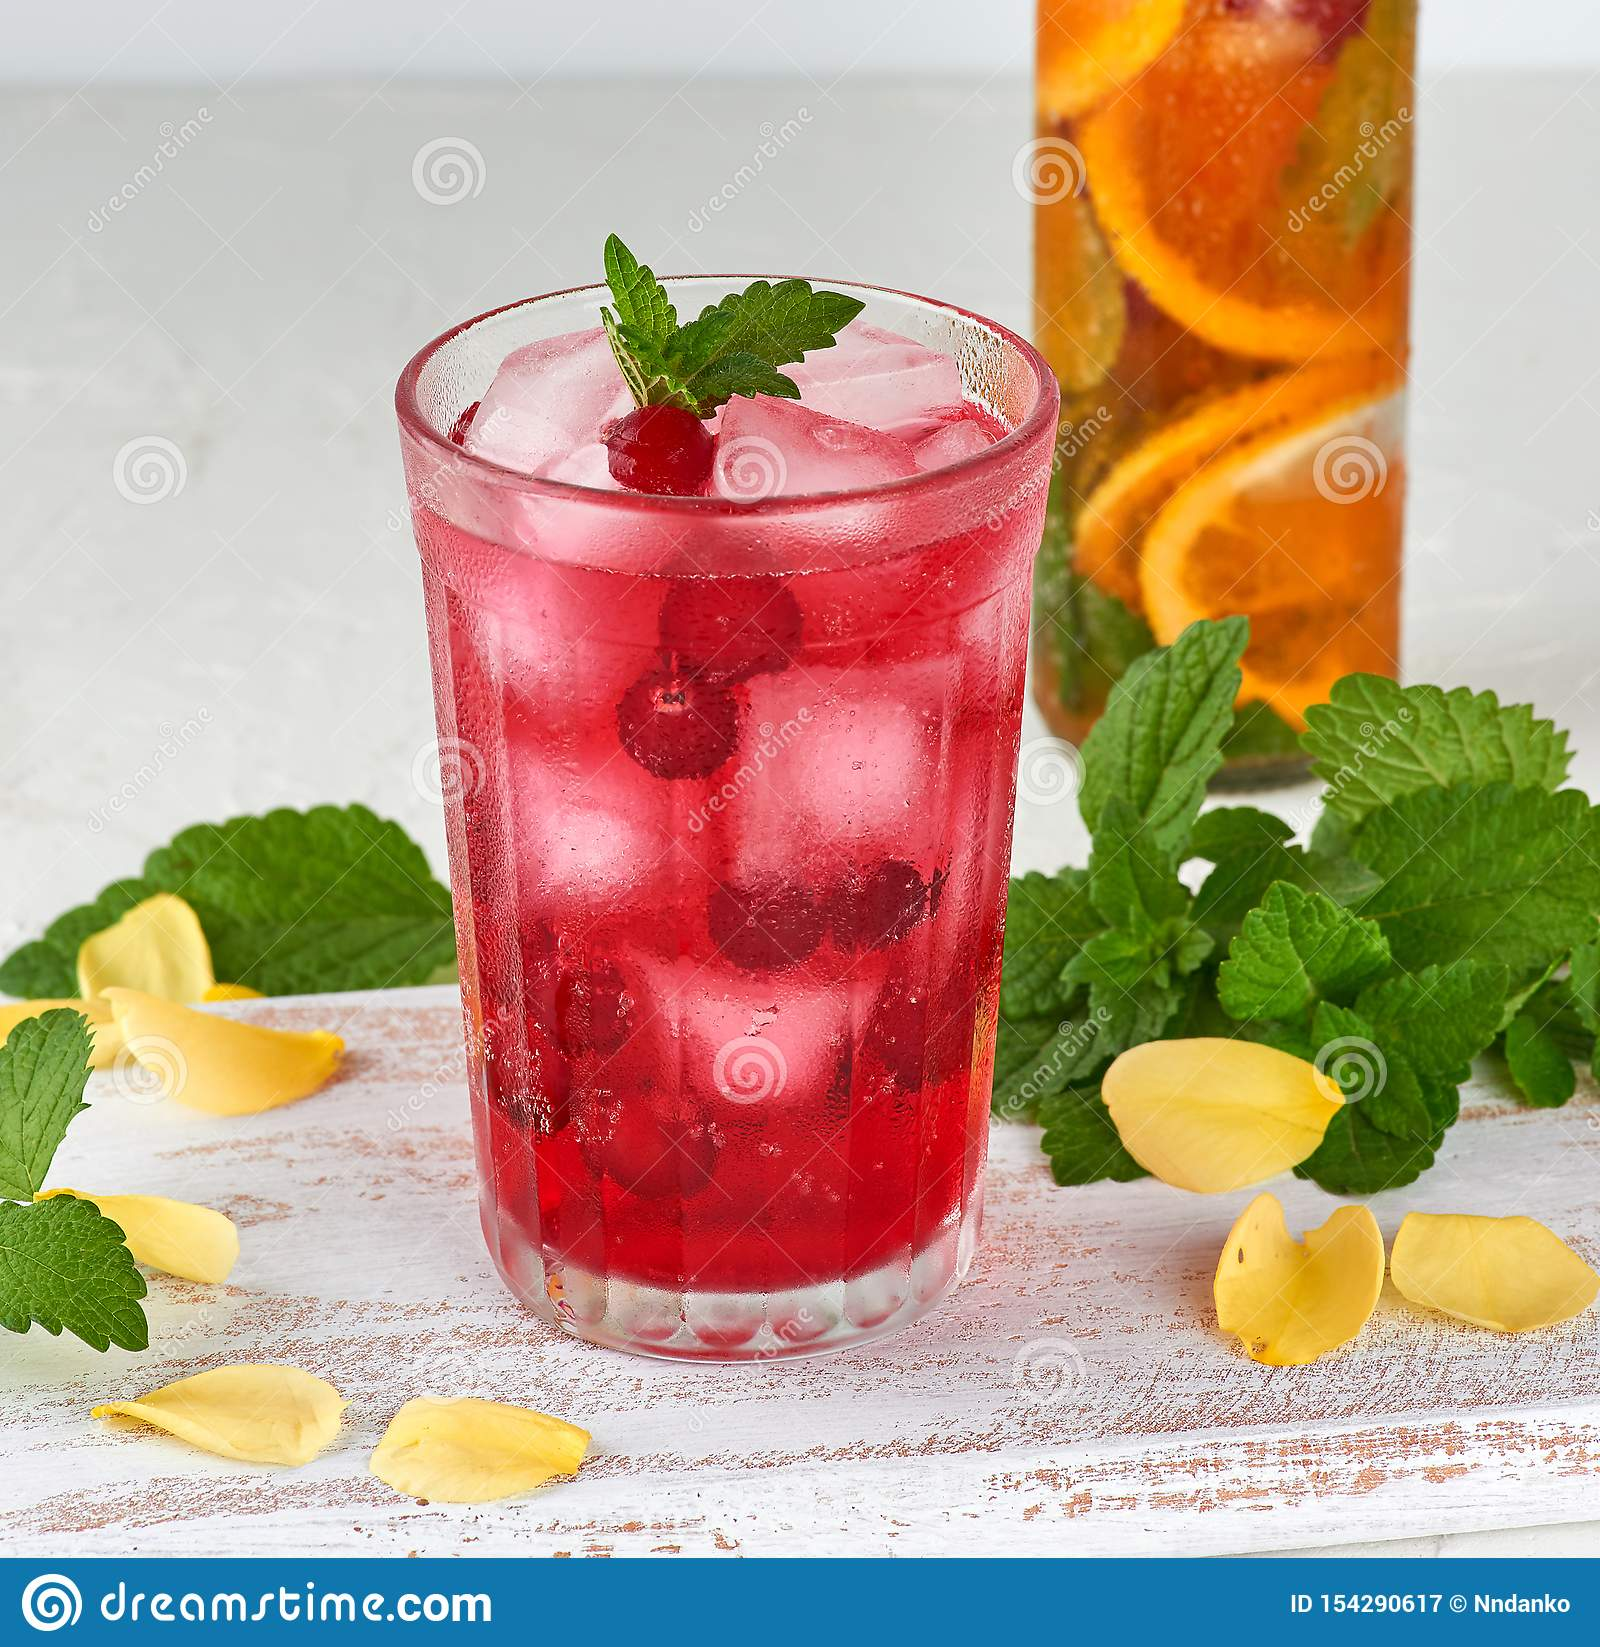 summer refreshing drink with berries of cranberries and pieces of ice in a glass